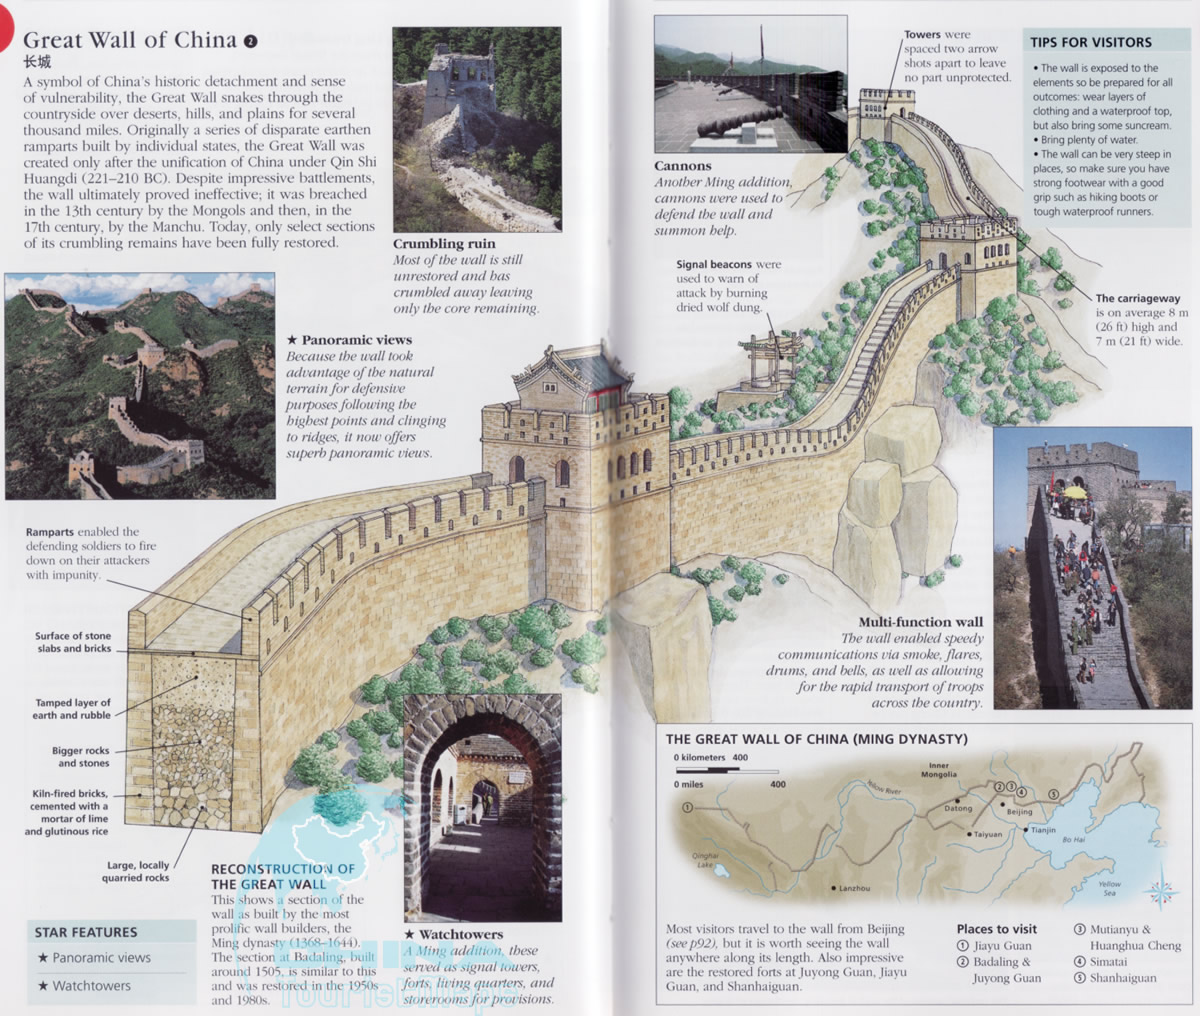 a history of great wall of china Great wall of china: history of construction the great wall developed from the disparate border fortifications and castles of individual chinese kingdoms.